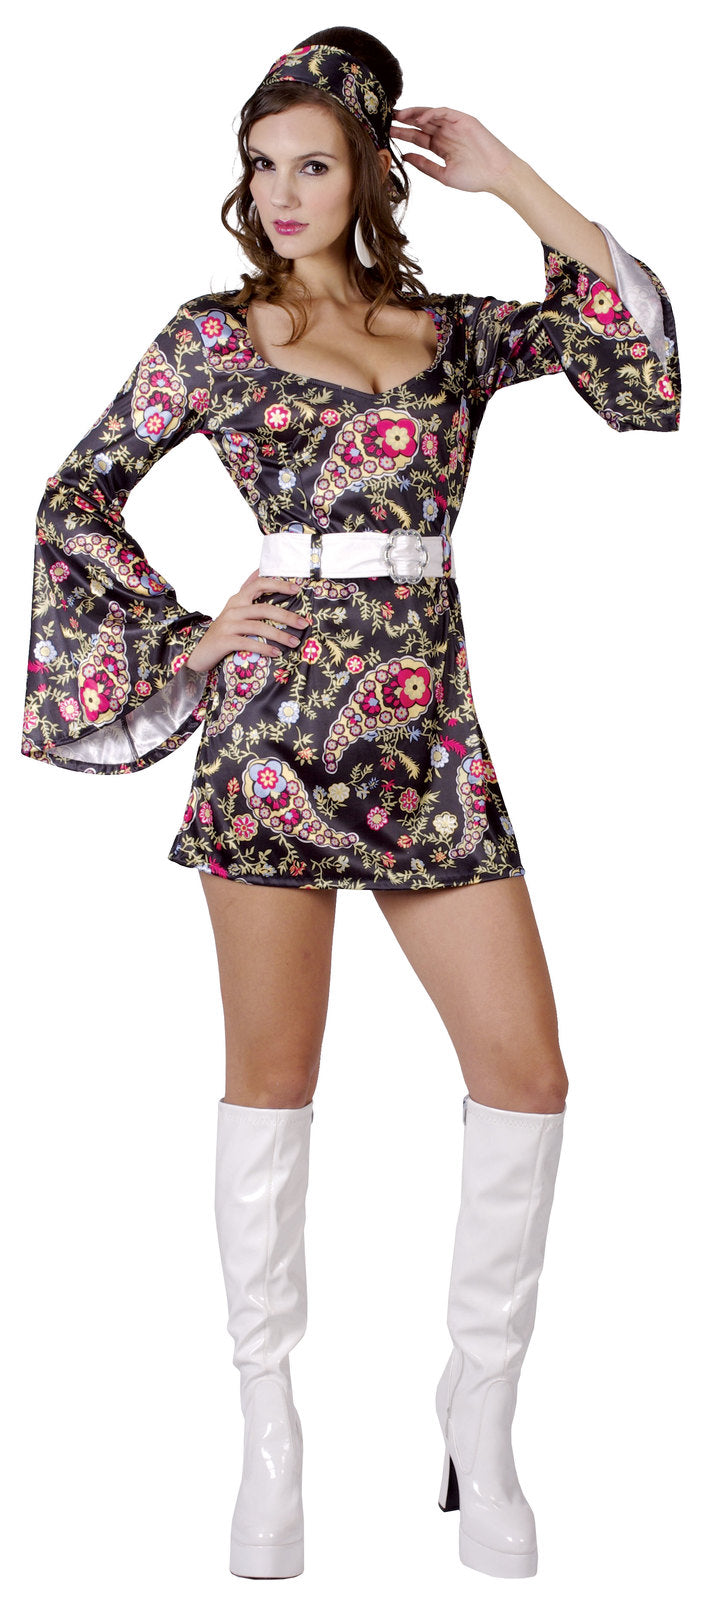 FLORAL 60S GO-GO COSTUME, ADULT - SIZE M